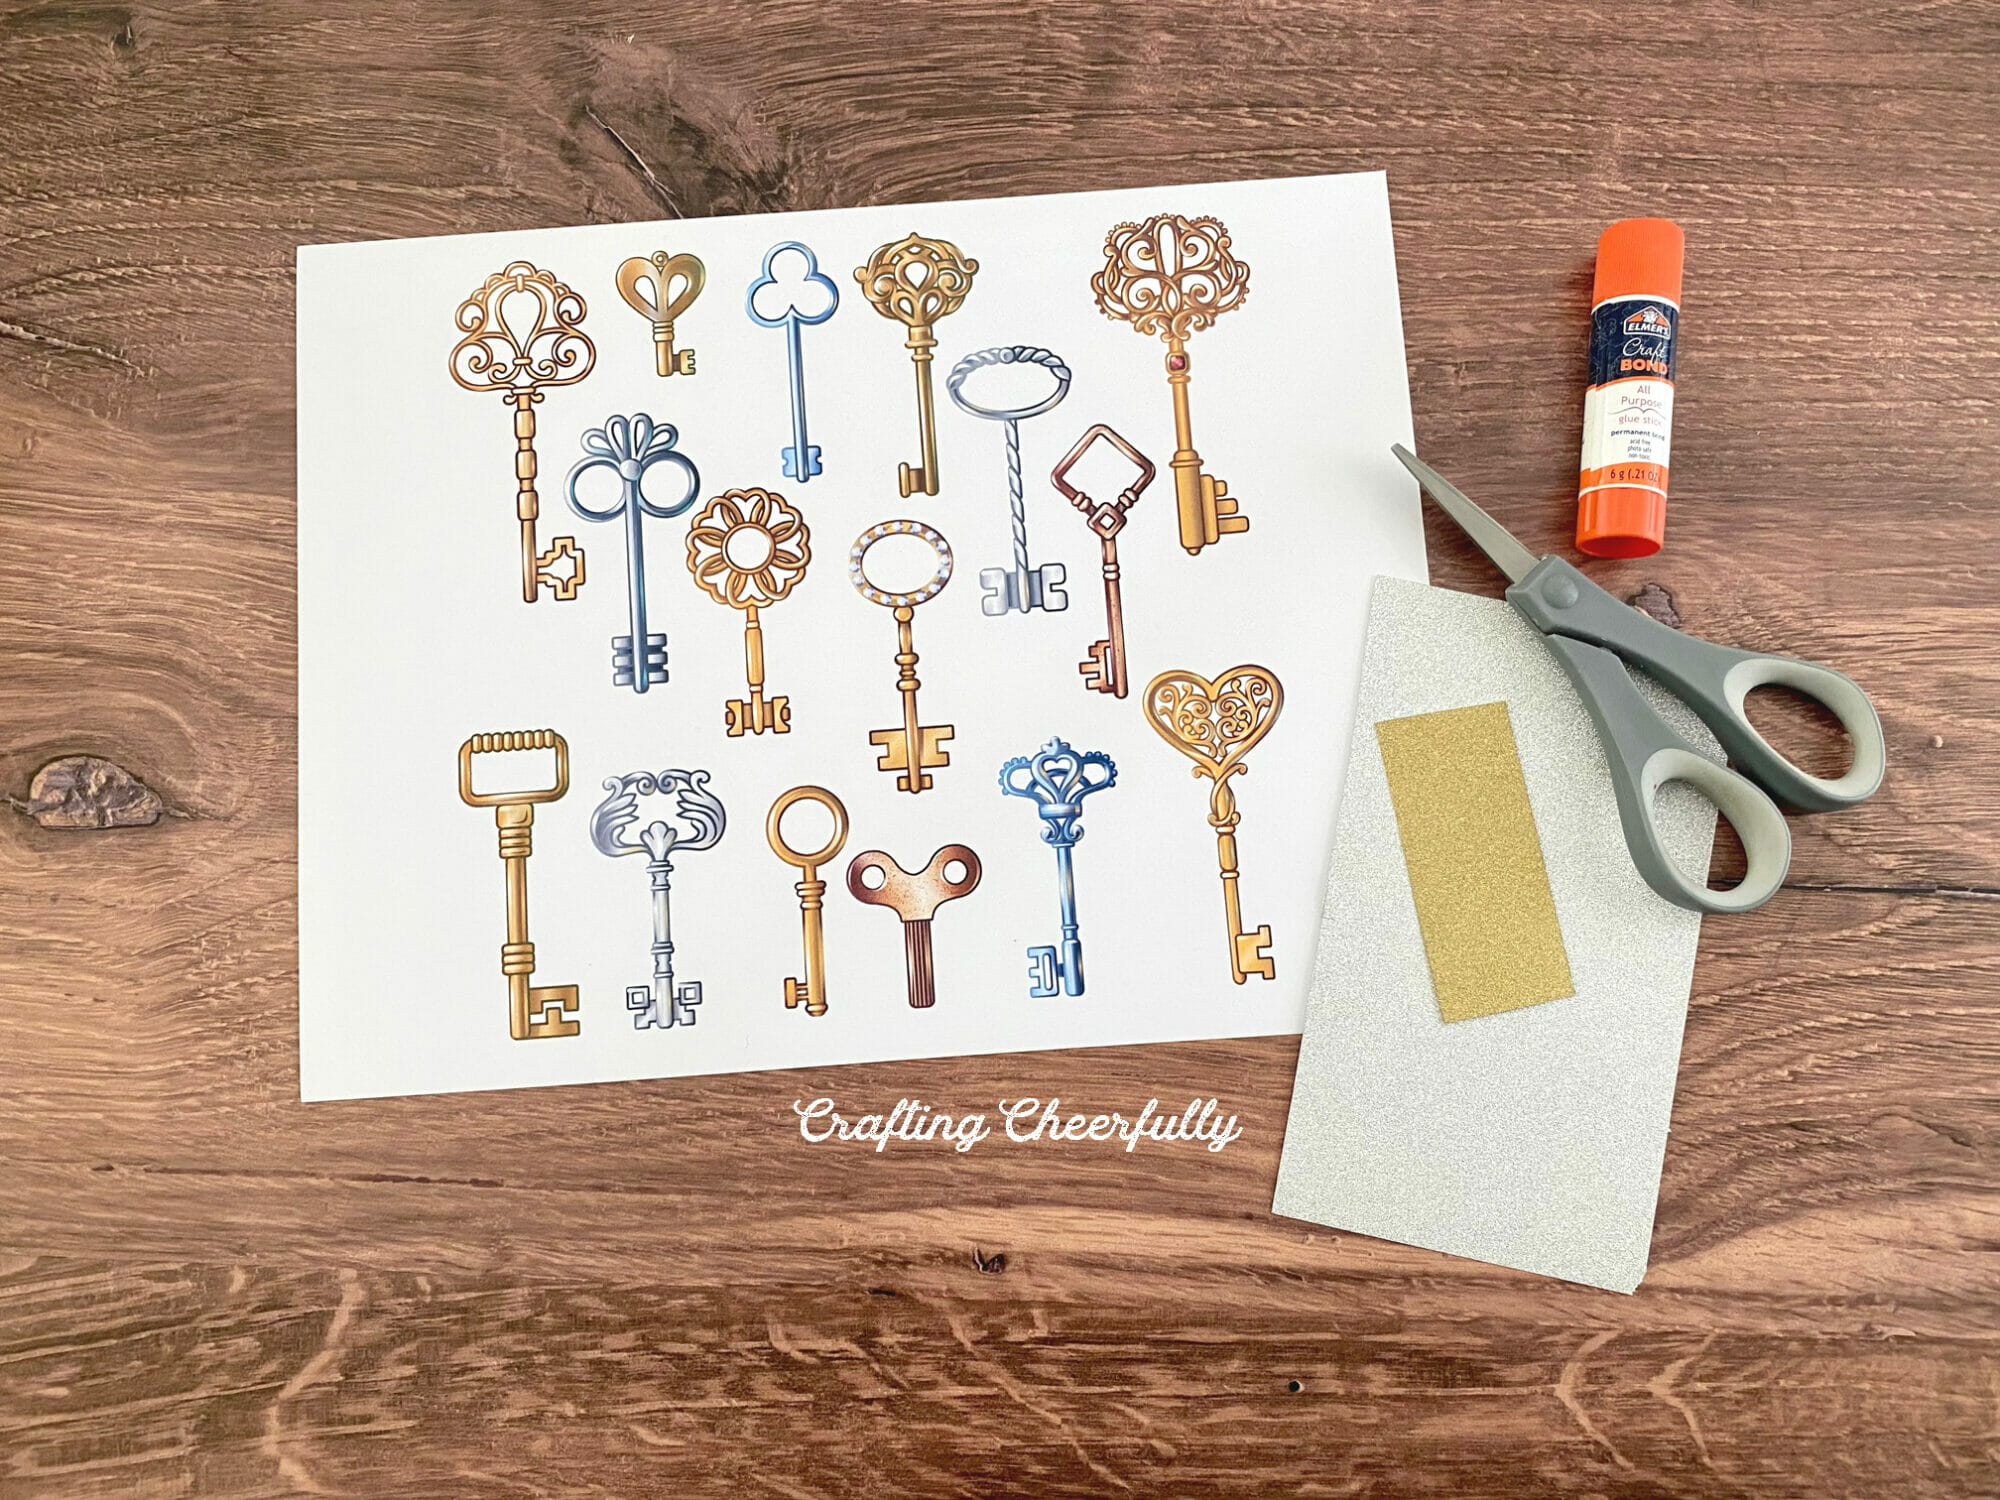 A sheet of printable keys lays next to a scissors, glue stick and glitter paper.